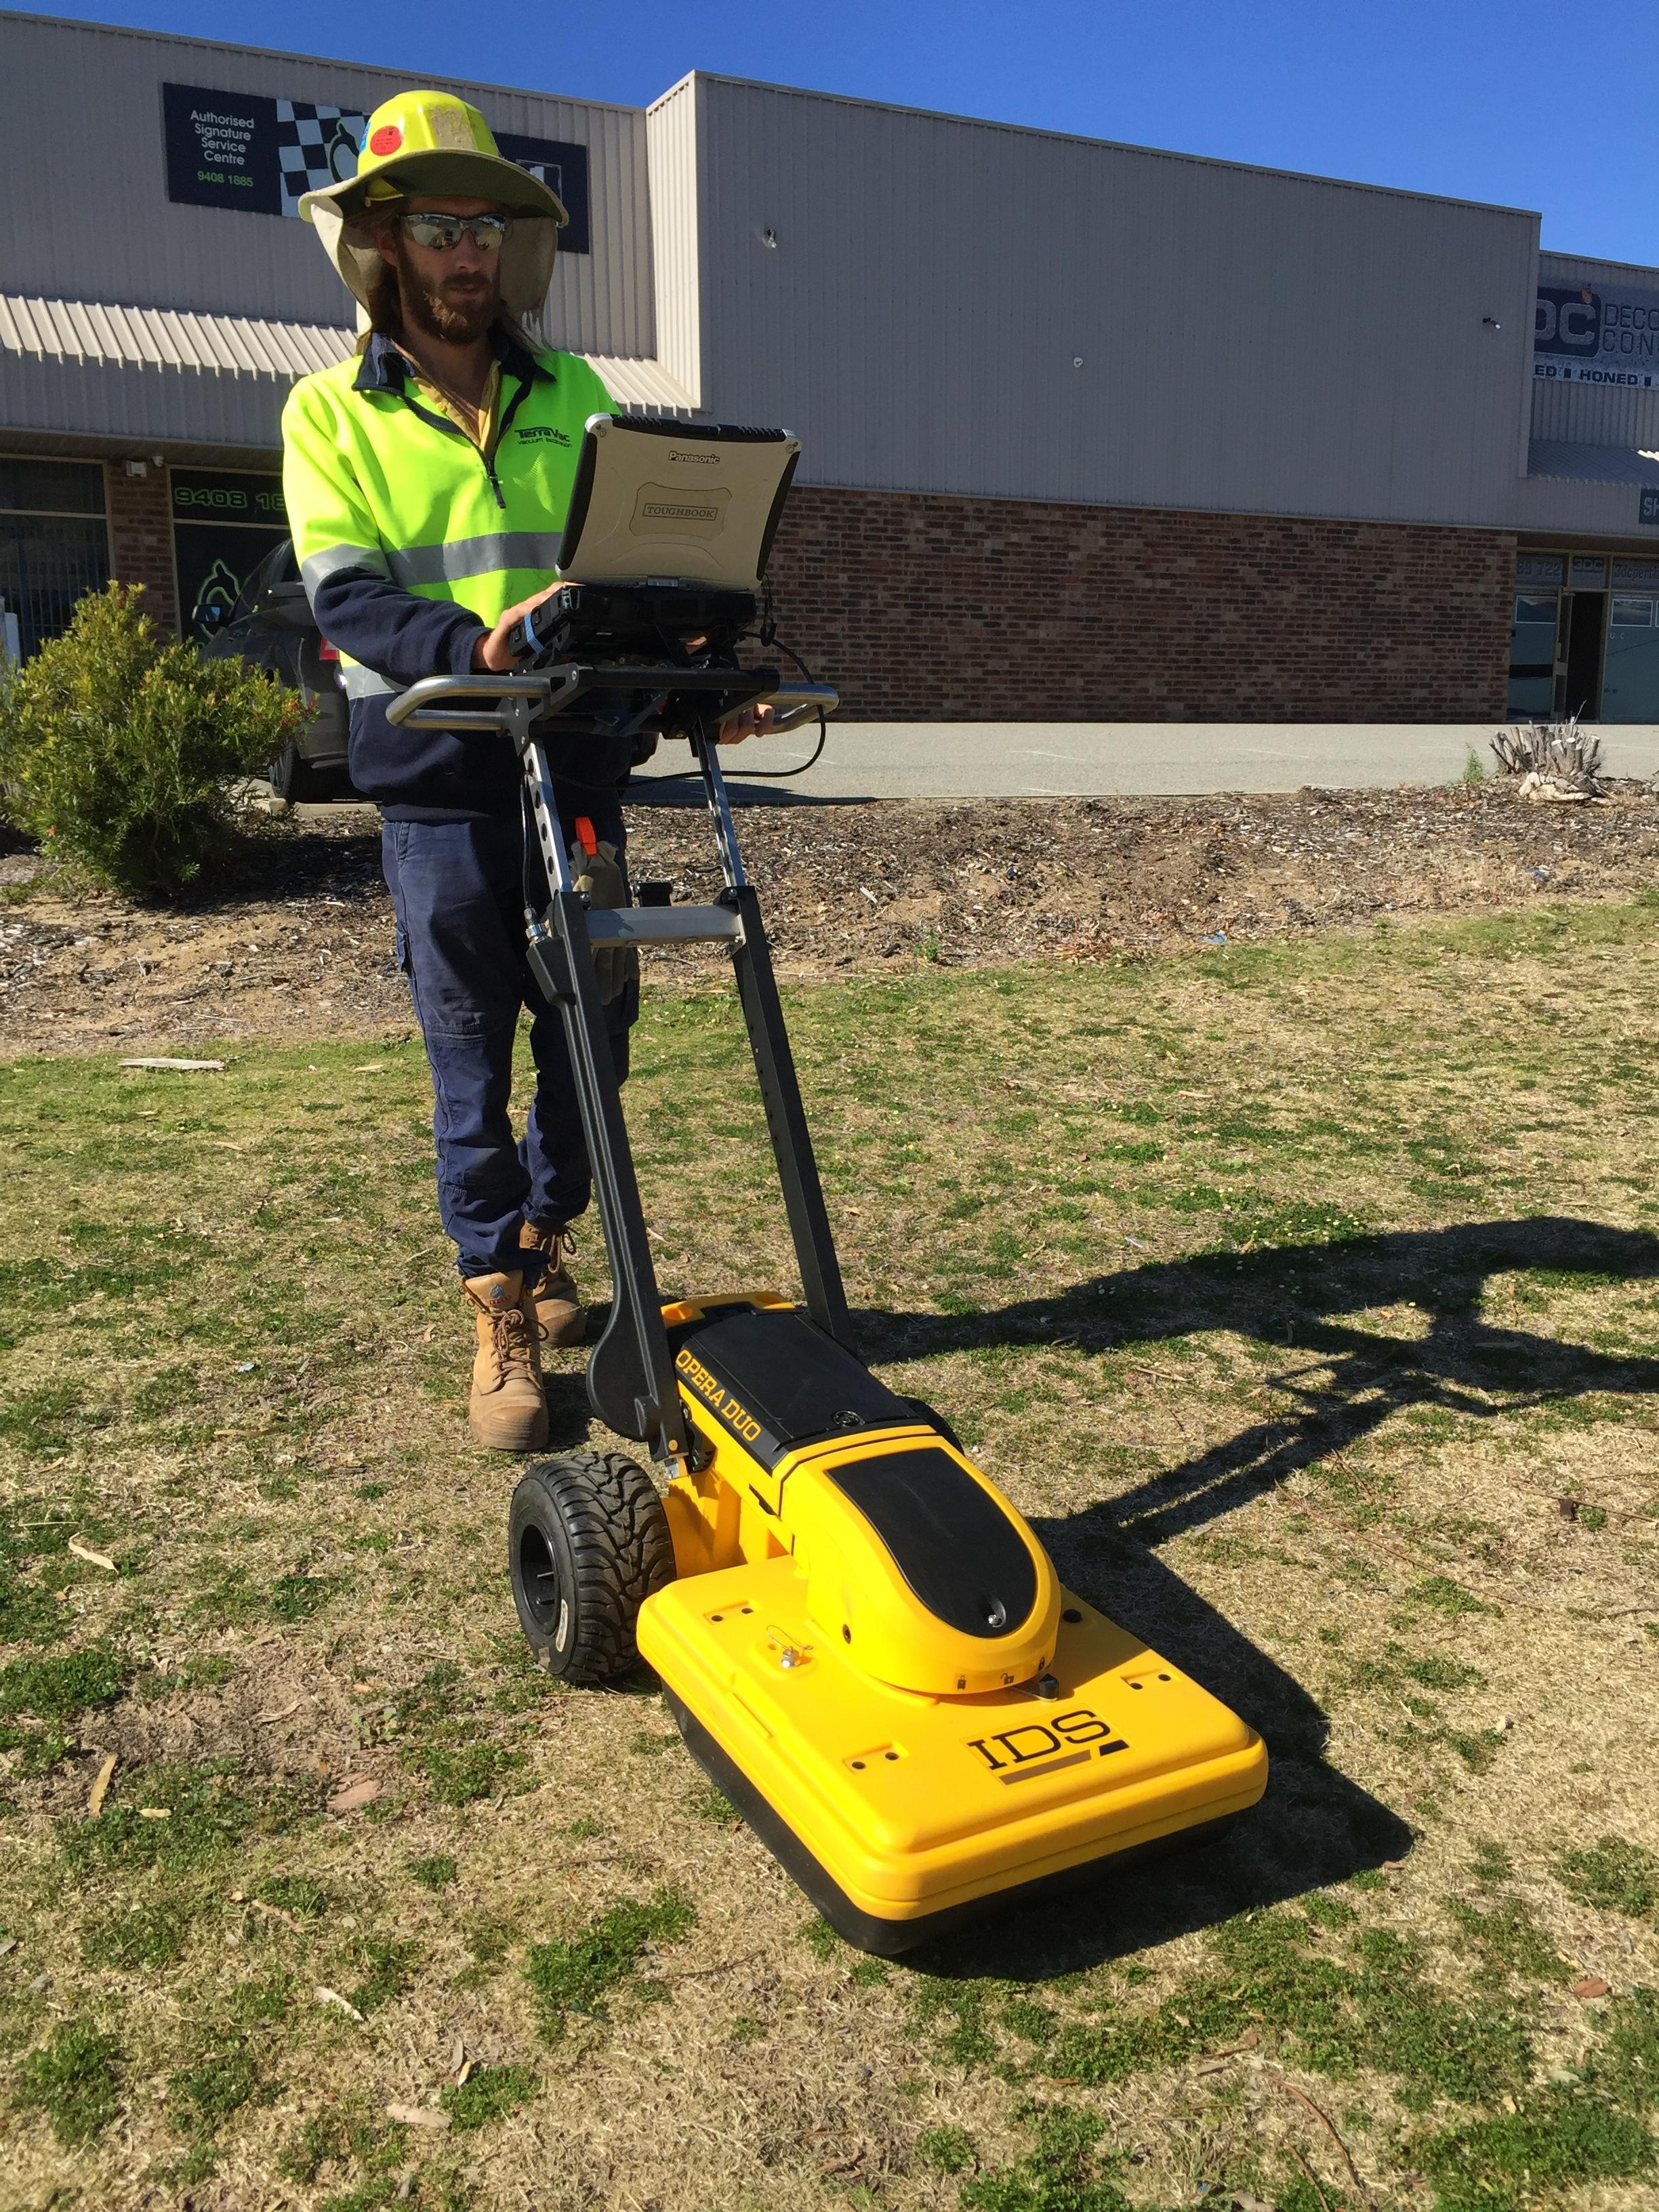 TerraVac Ground Penetrating Radar GPR